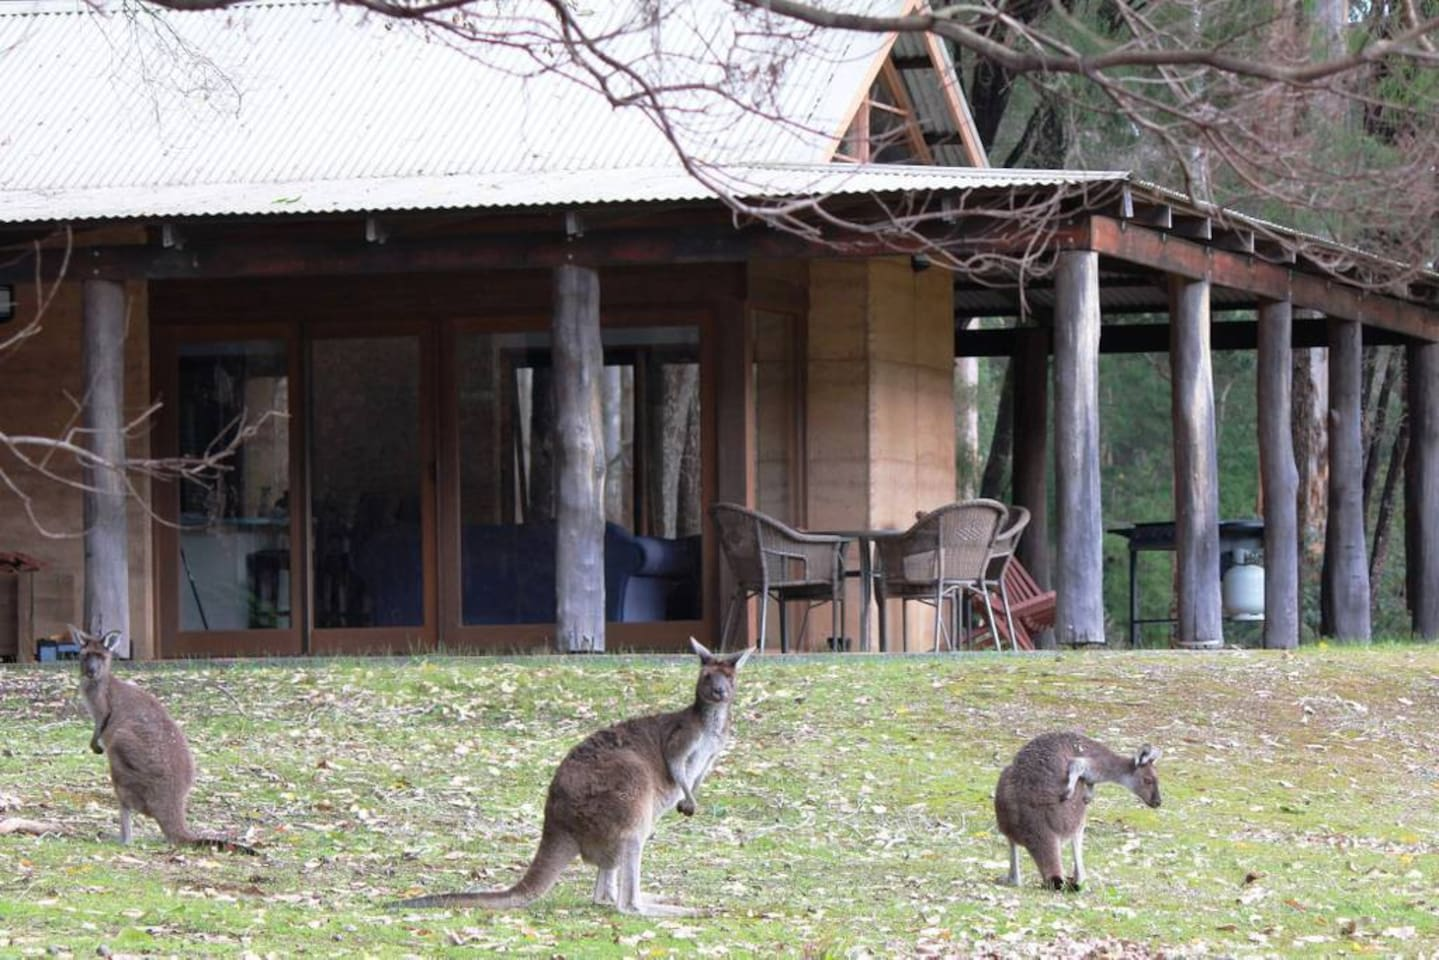 Kangaroos just outside your chalet